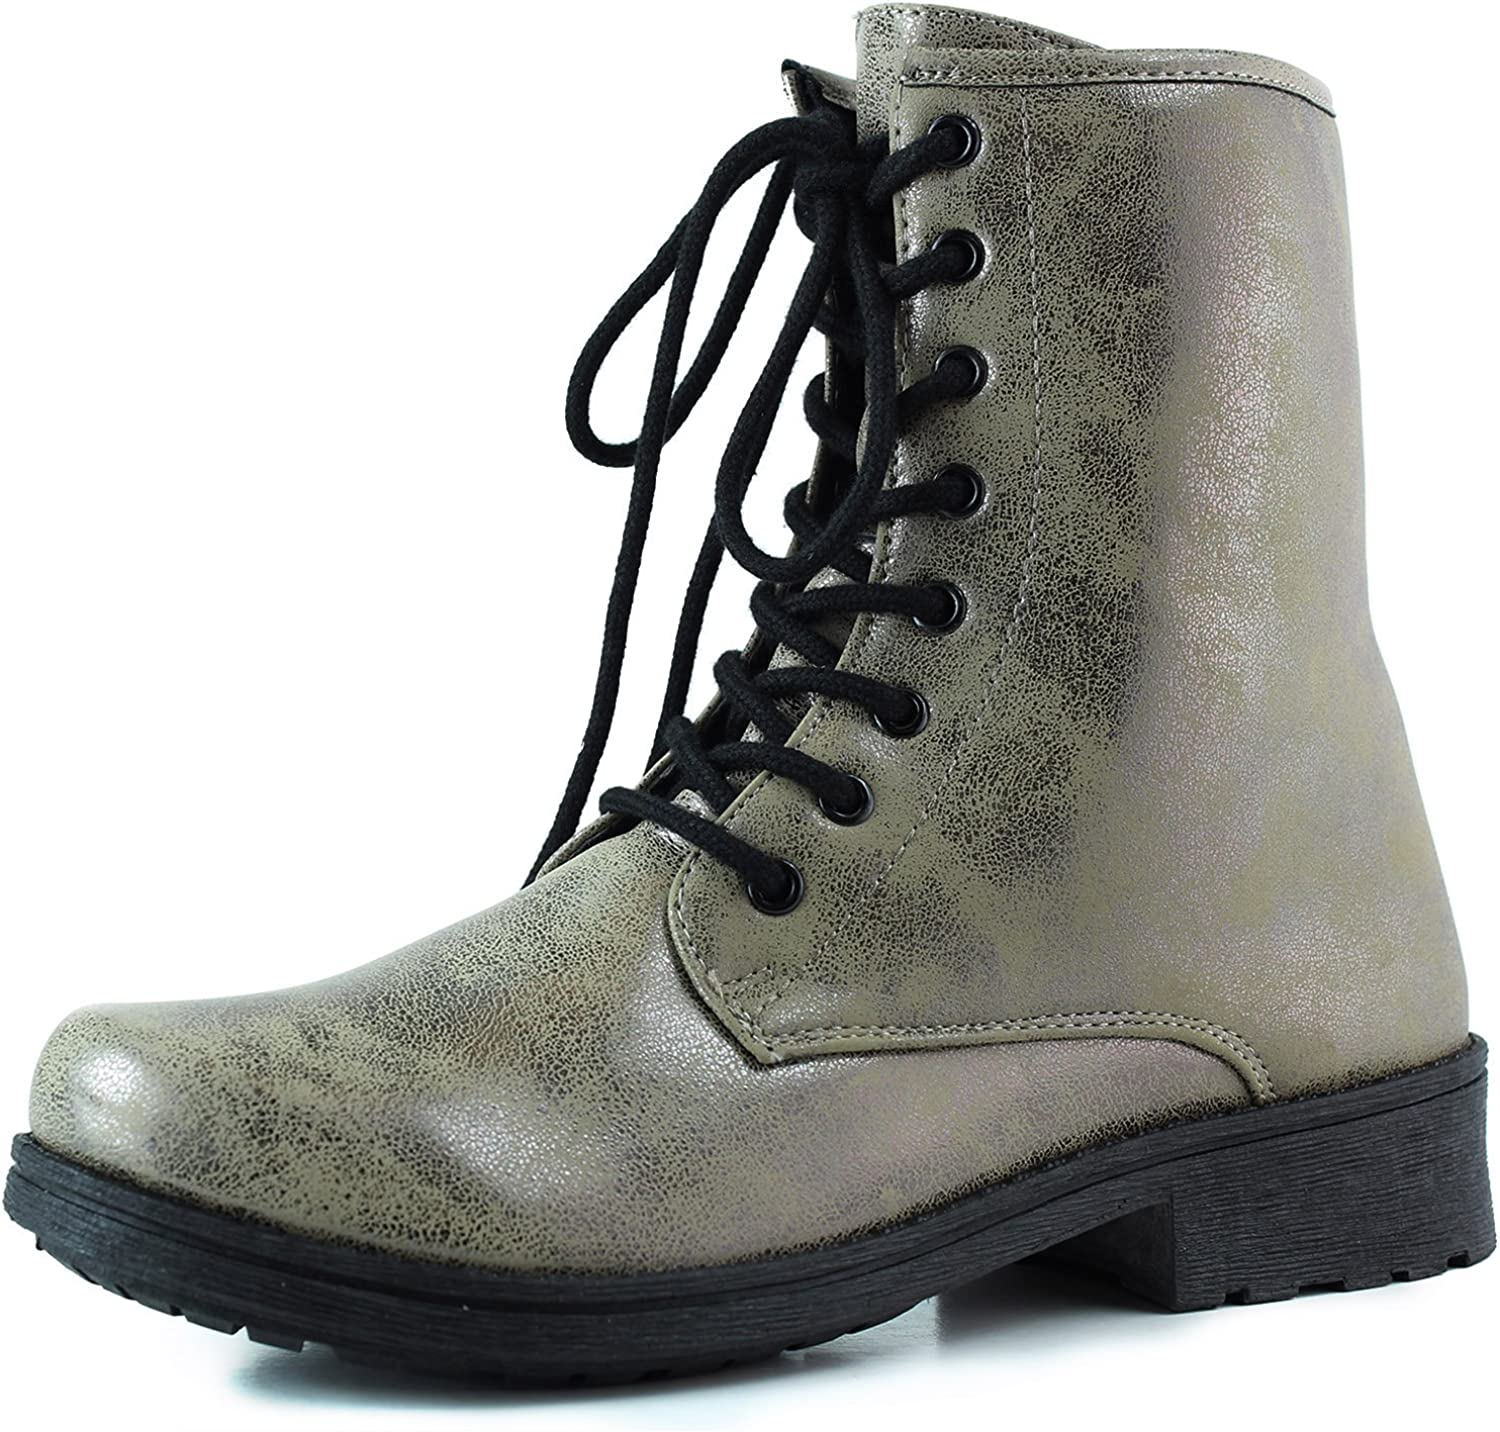 Qupid Women's Ankle Bootie Military Combat Lace Up Boot Taupe Bronze Distress, Taupe, 6.5